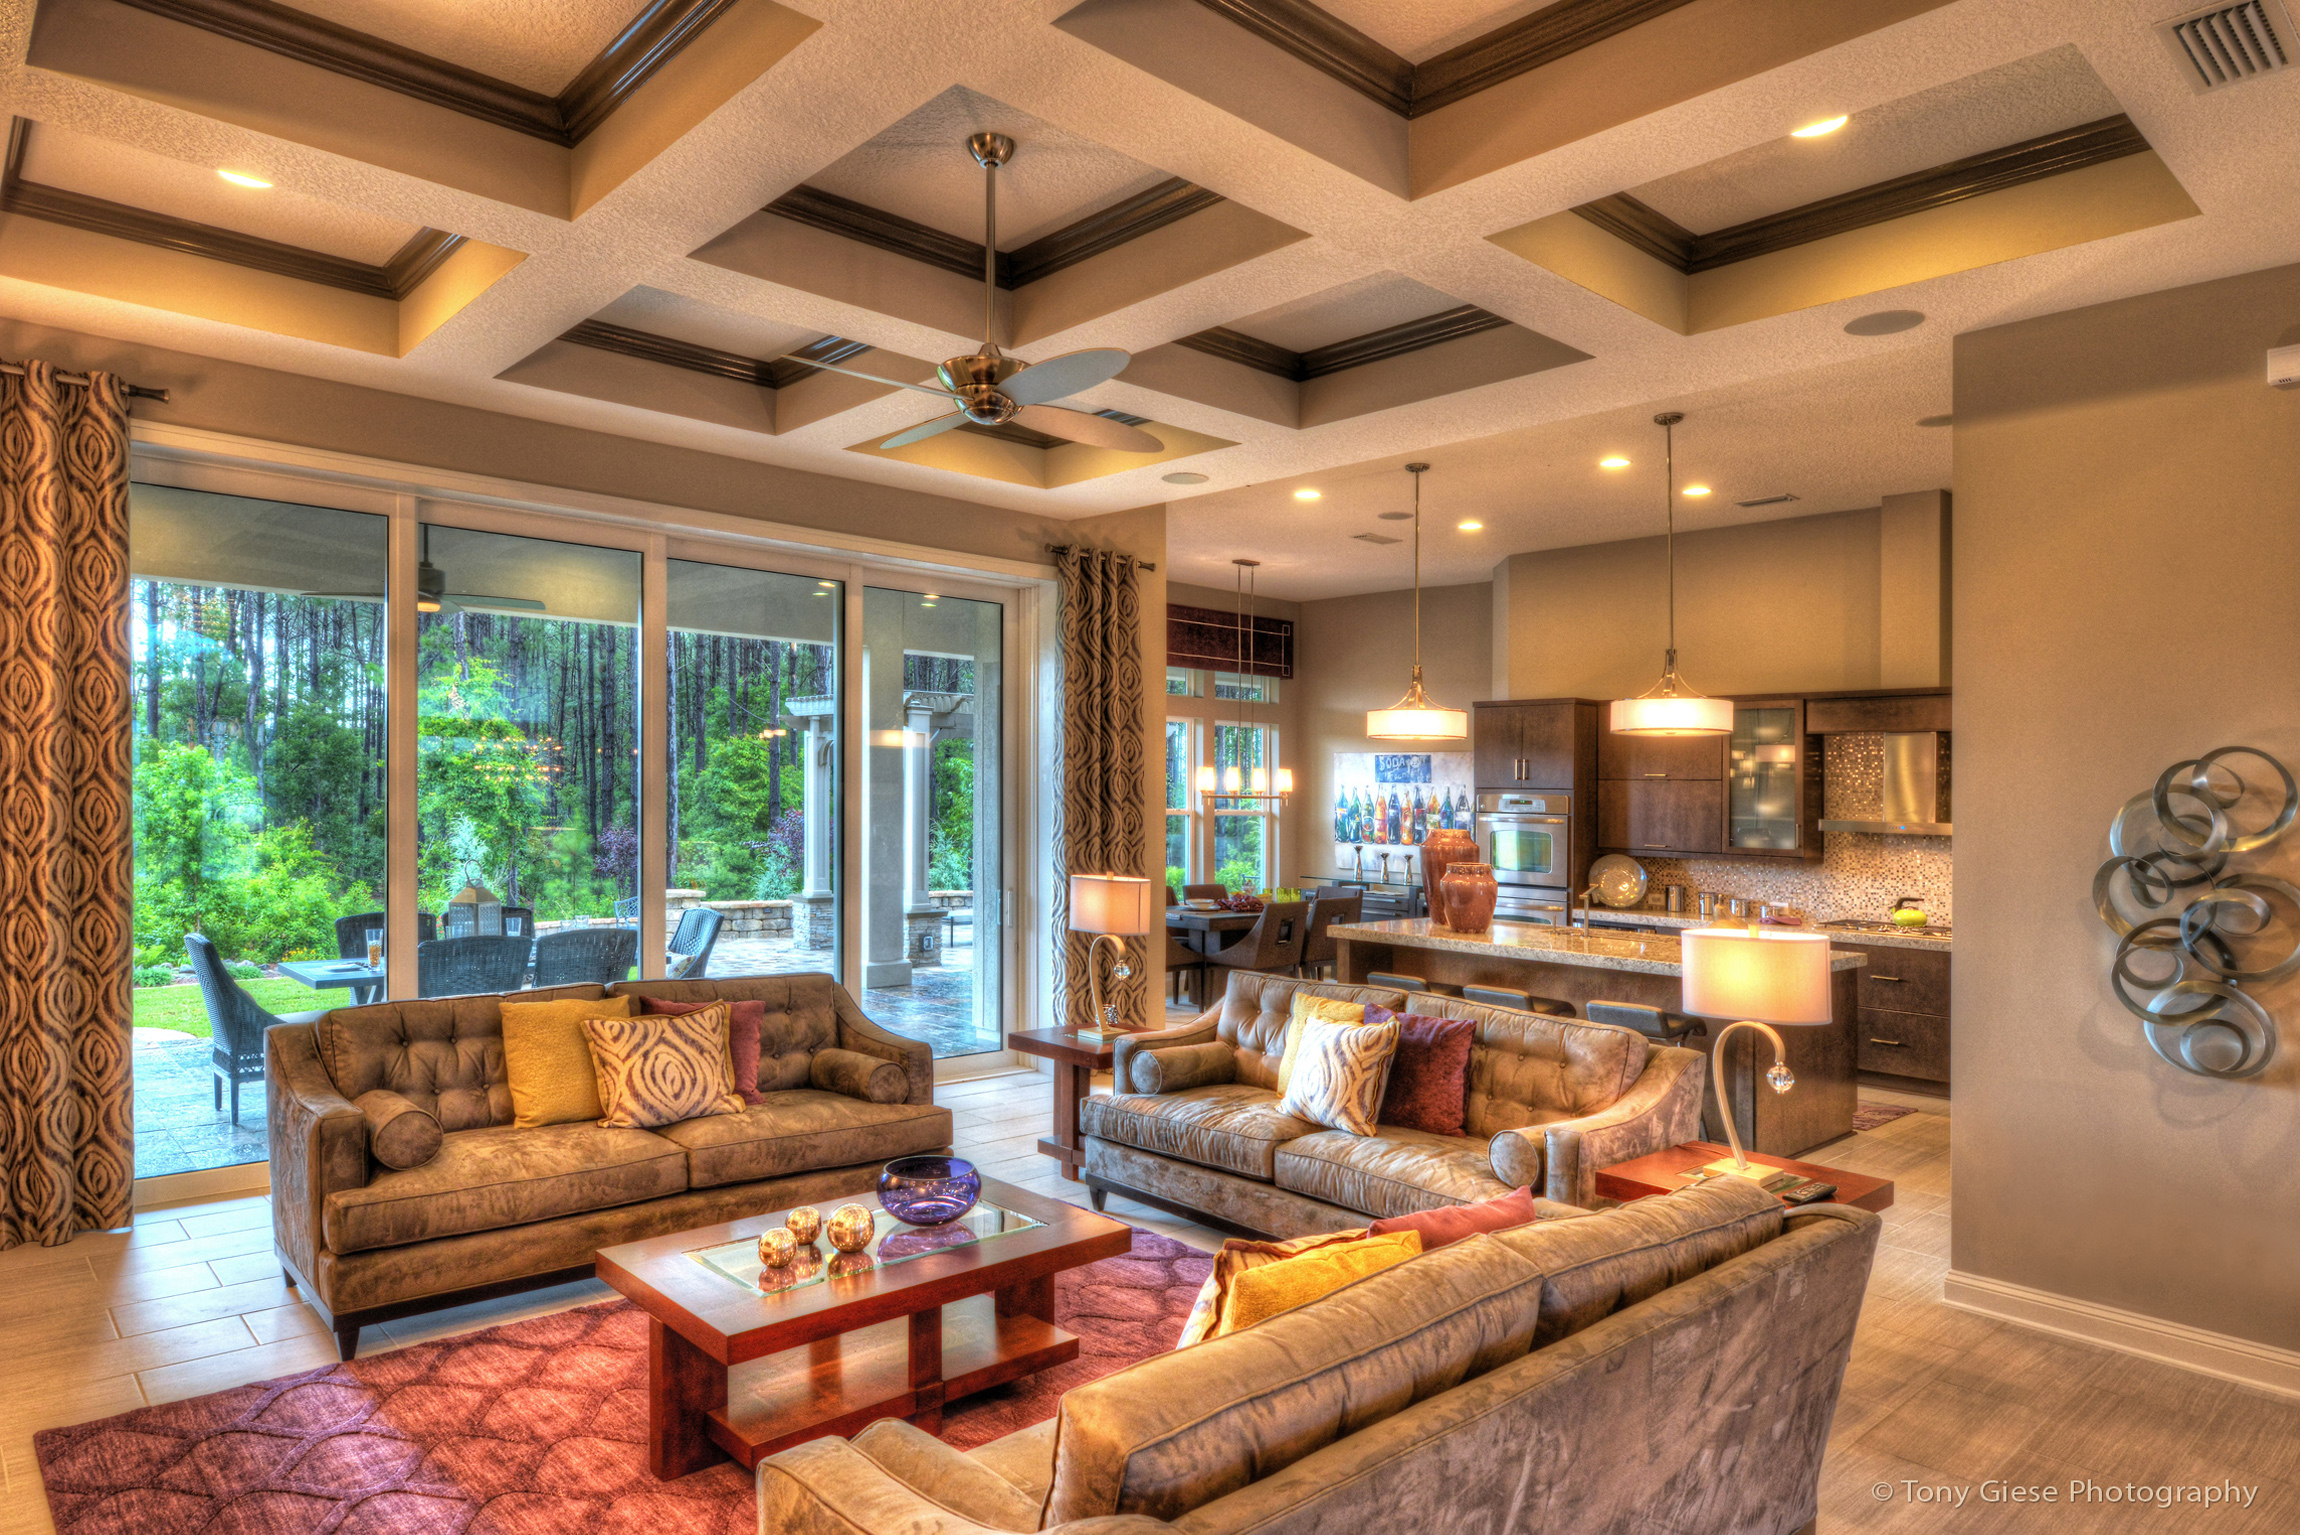 Beautiful new model home interior located in northeastern Florida.